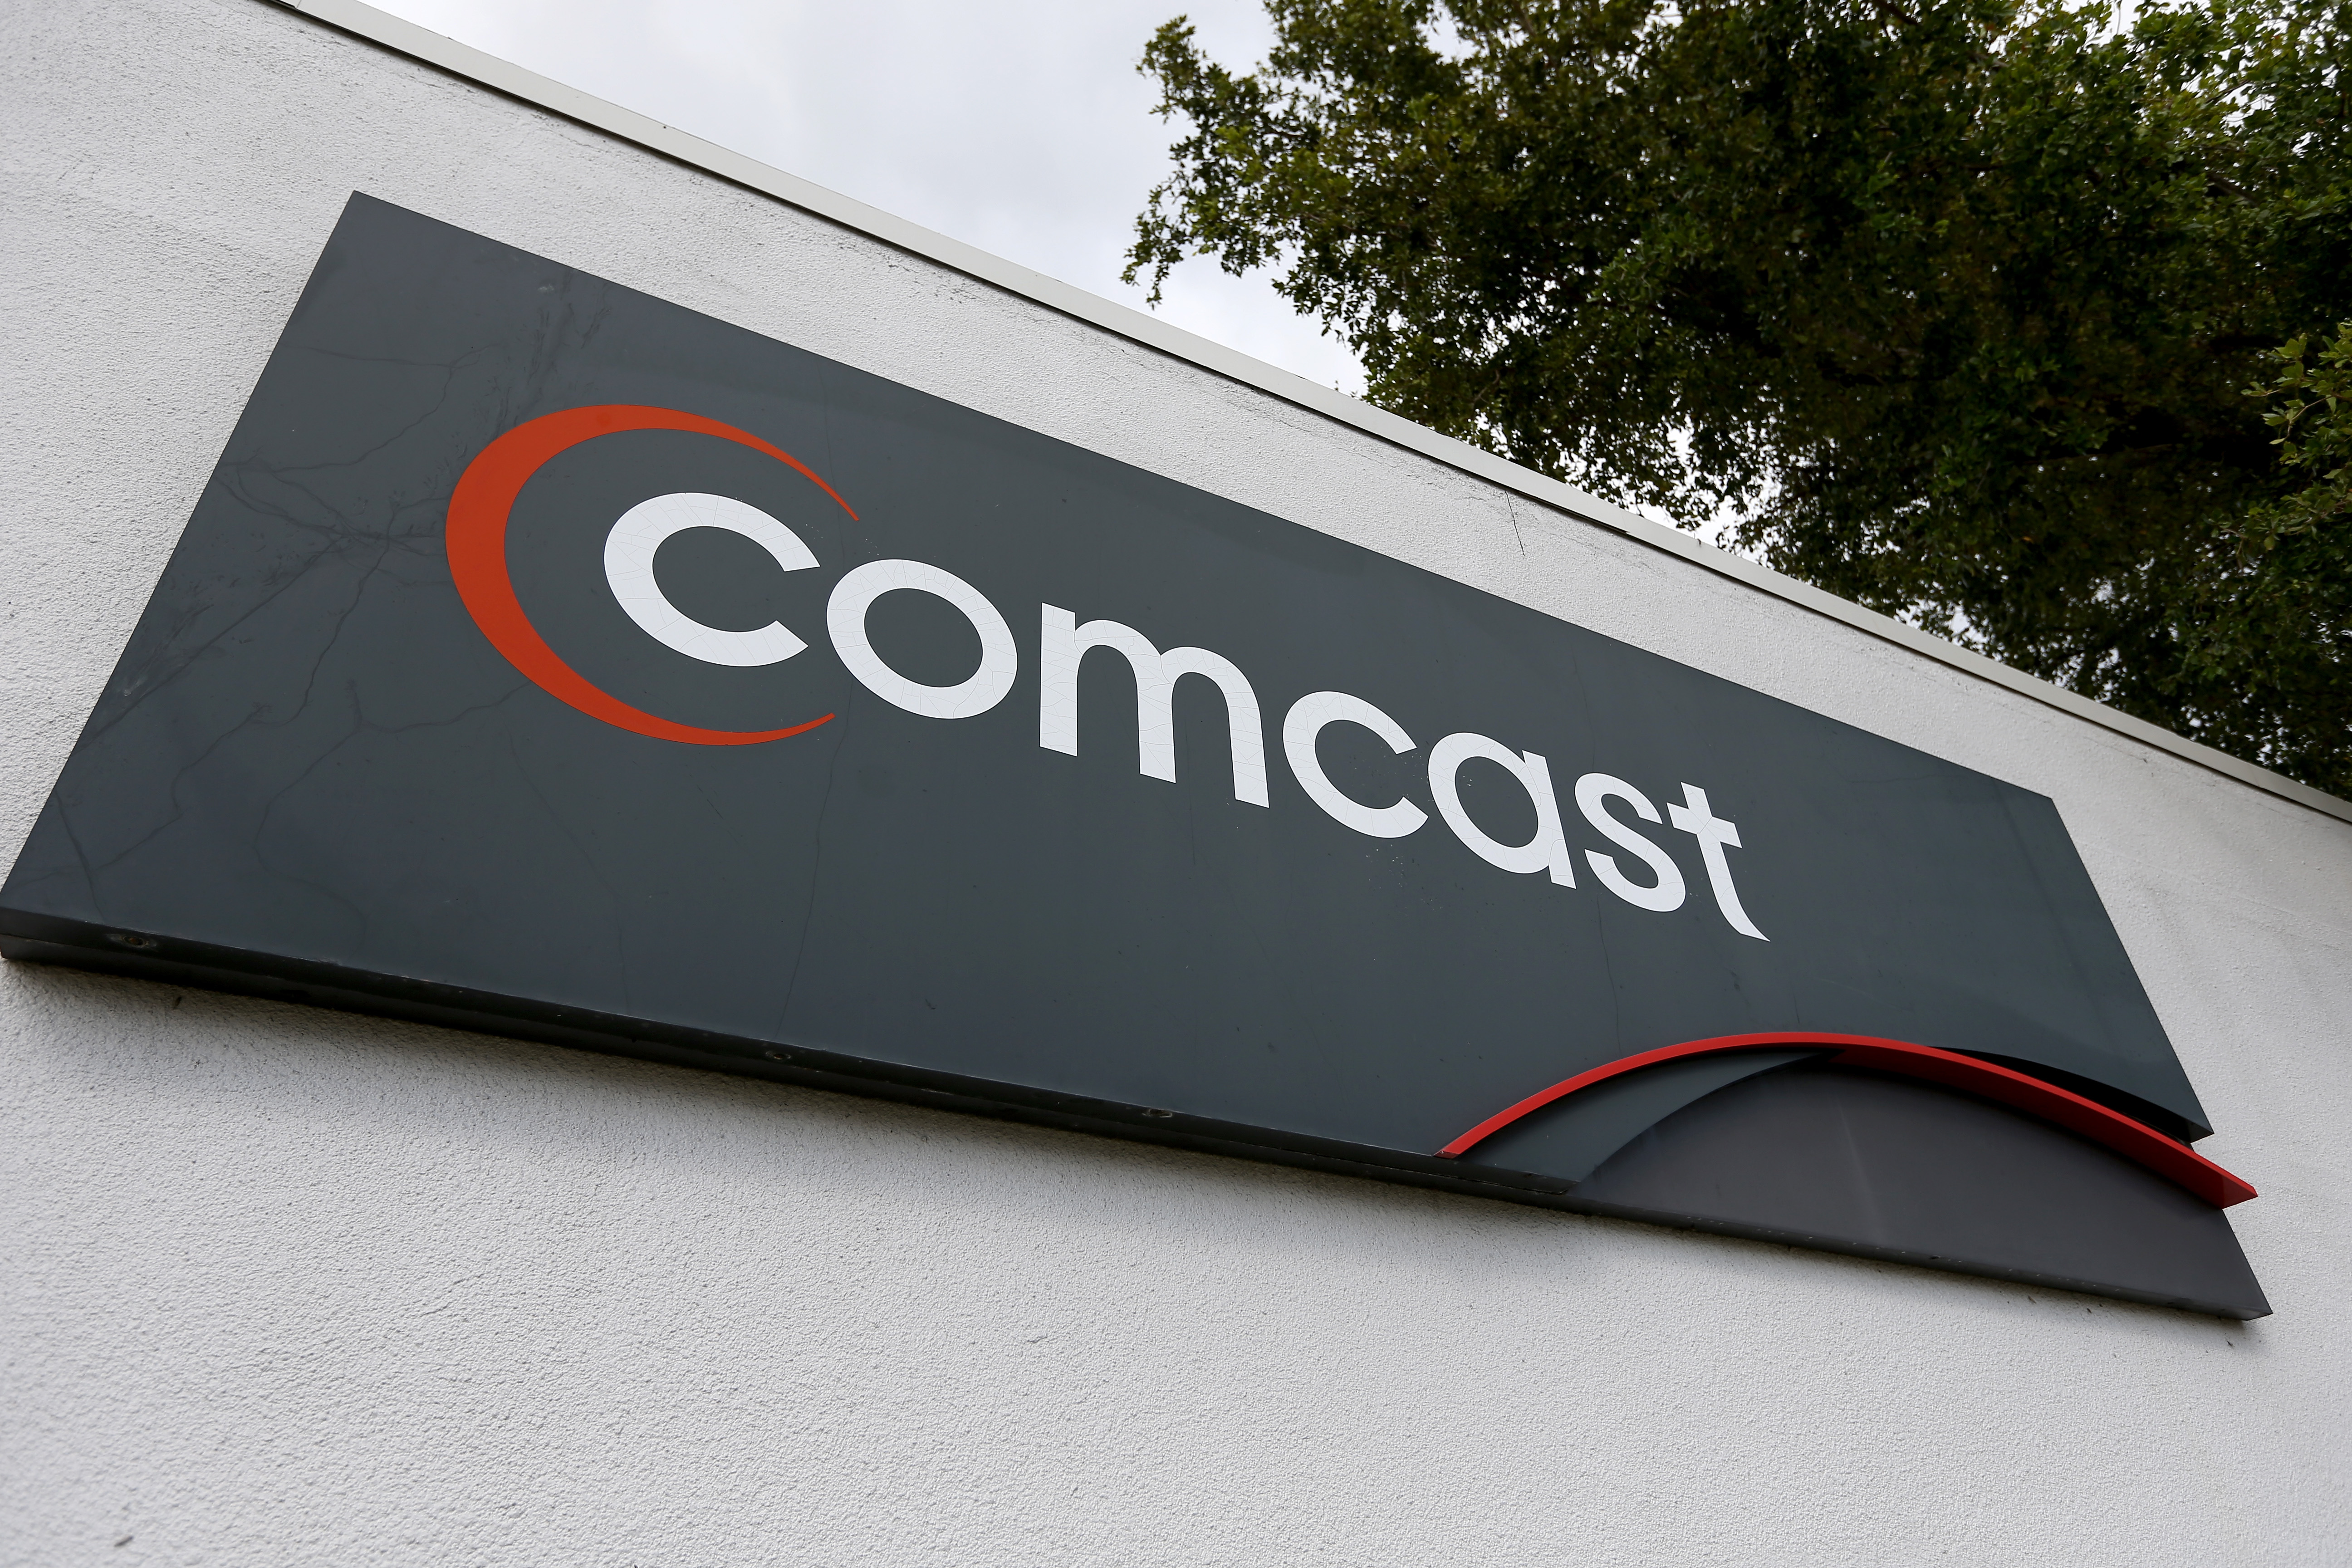 A Comcast sign is seen at one of their centers on February 13, 2014 in Pompano Beach, Florida.